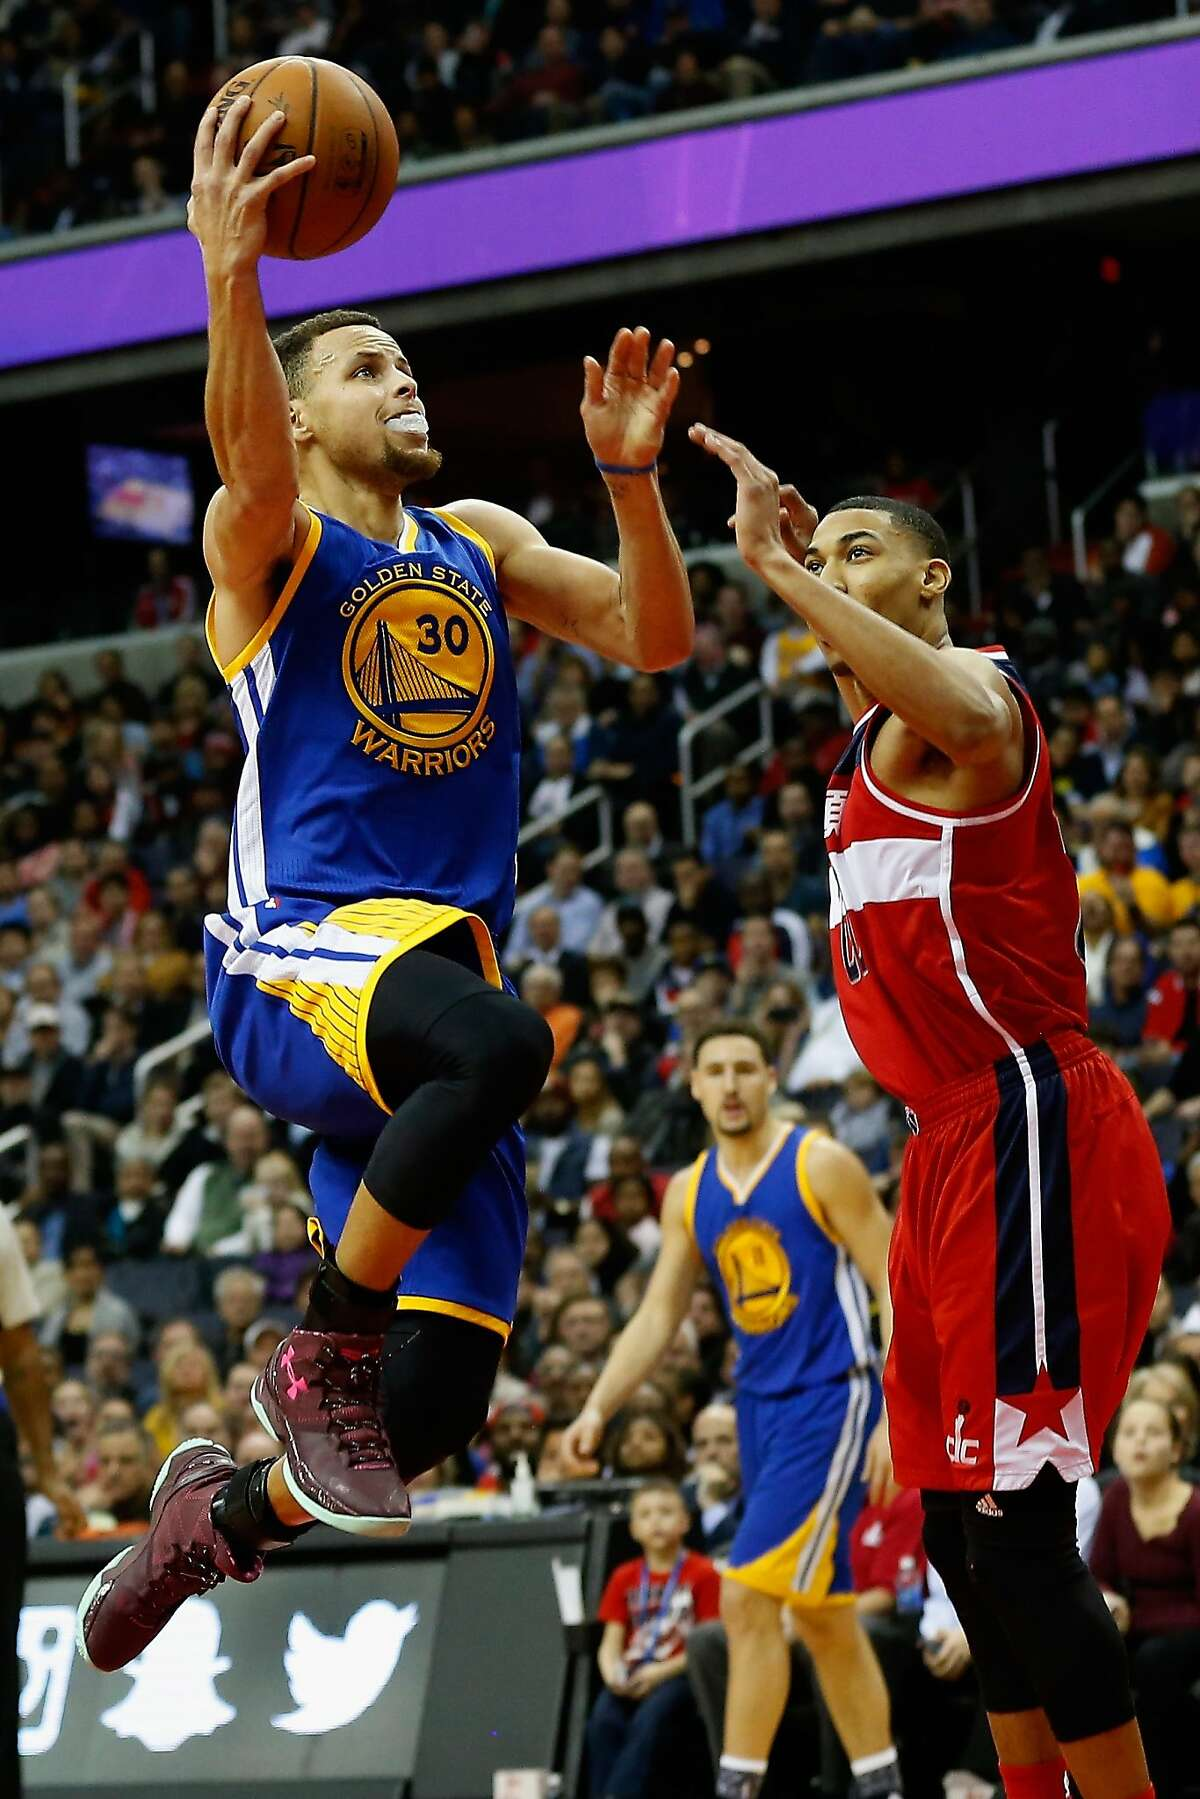 WASHINGTON, DC - FEBRUARY 03: Stephen Curry #30 of the Golden State Warriors puts up a shot in front of Otto Porter Jr. #22 of the Washington Wizards in the first half at Verizon Center on February 3, 2016 in Washington, DC. NOTE TO USER: User expressly acknowledges and agrees that, by downloading and or using this photograph, User is consenting to the terms and conditions of the Getty Images License Agreement. (Photo by Rob Carr/Getty Images)